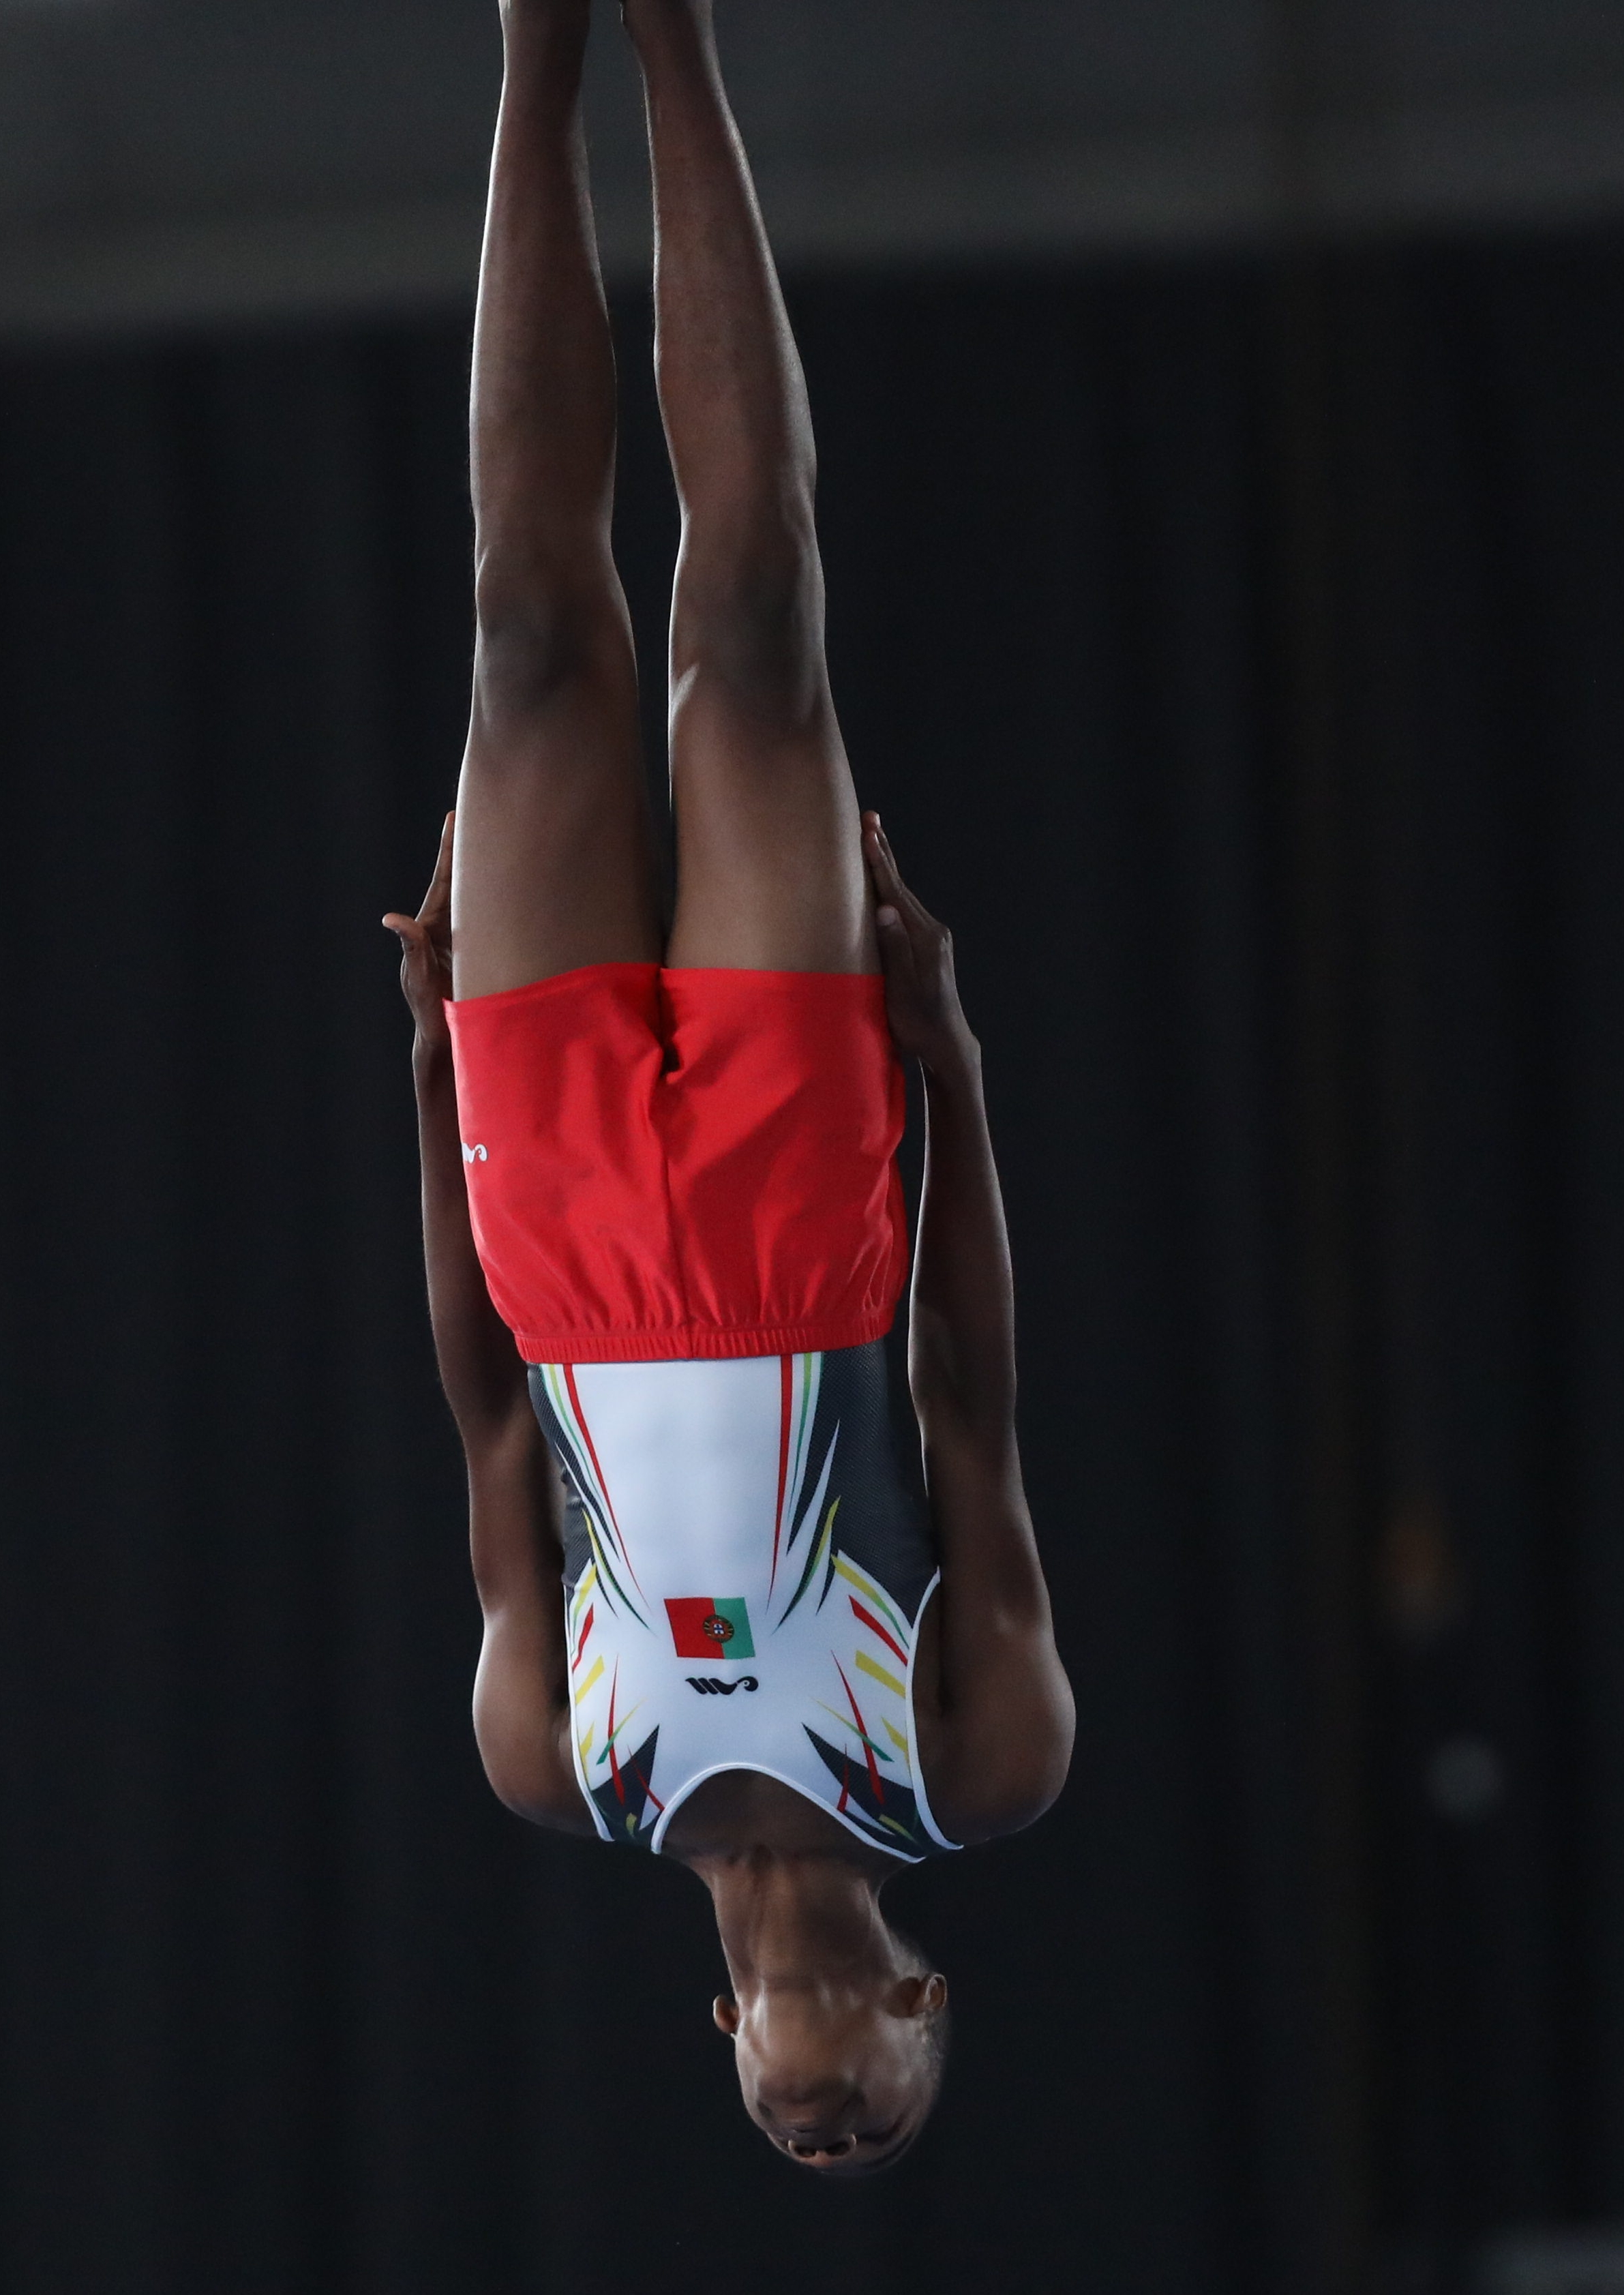 2018-10-14 Boys' Trampoline Gymnastics Final at 2018 Summer Youth Olympics by Sandro Halank-171.jpg Deutsch: Trampolinturnen männlich: Finale